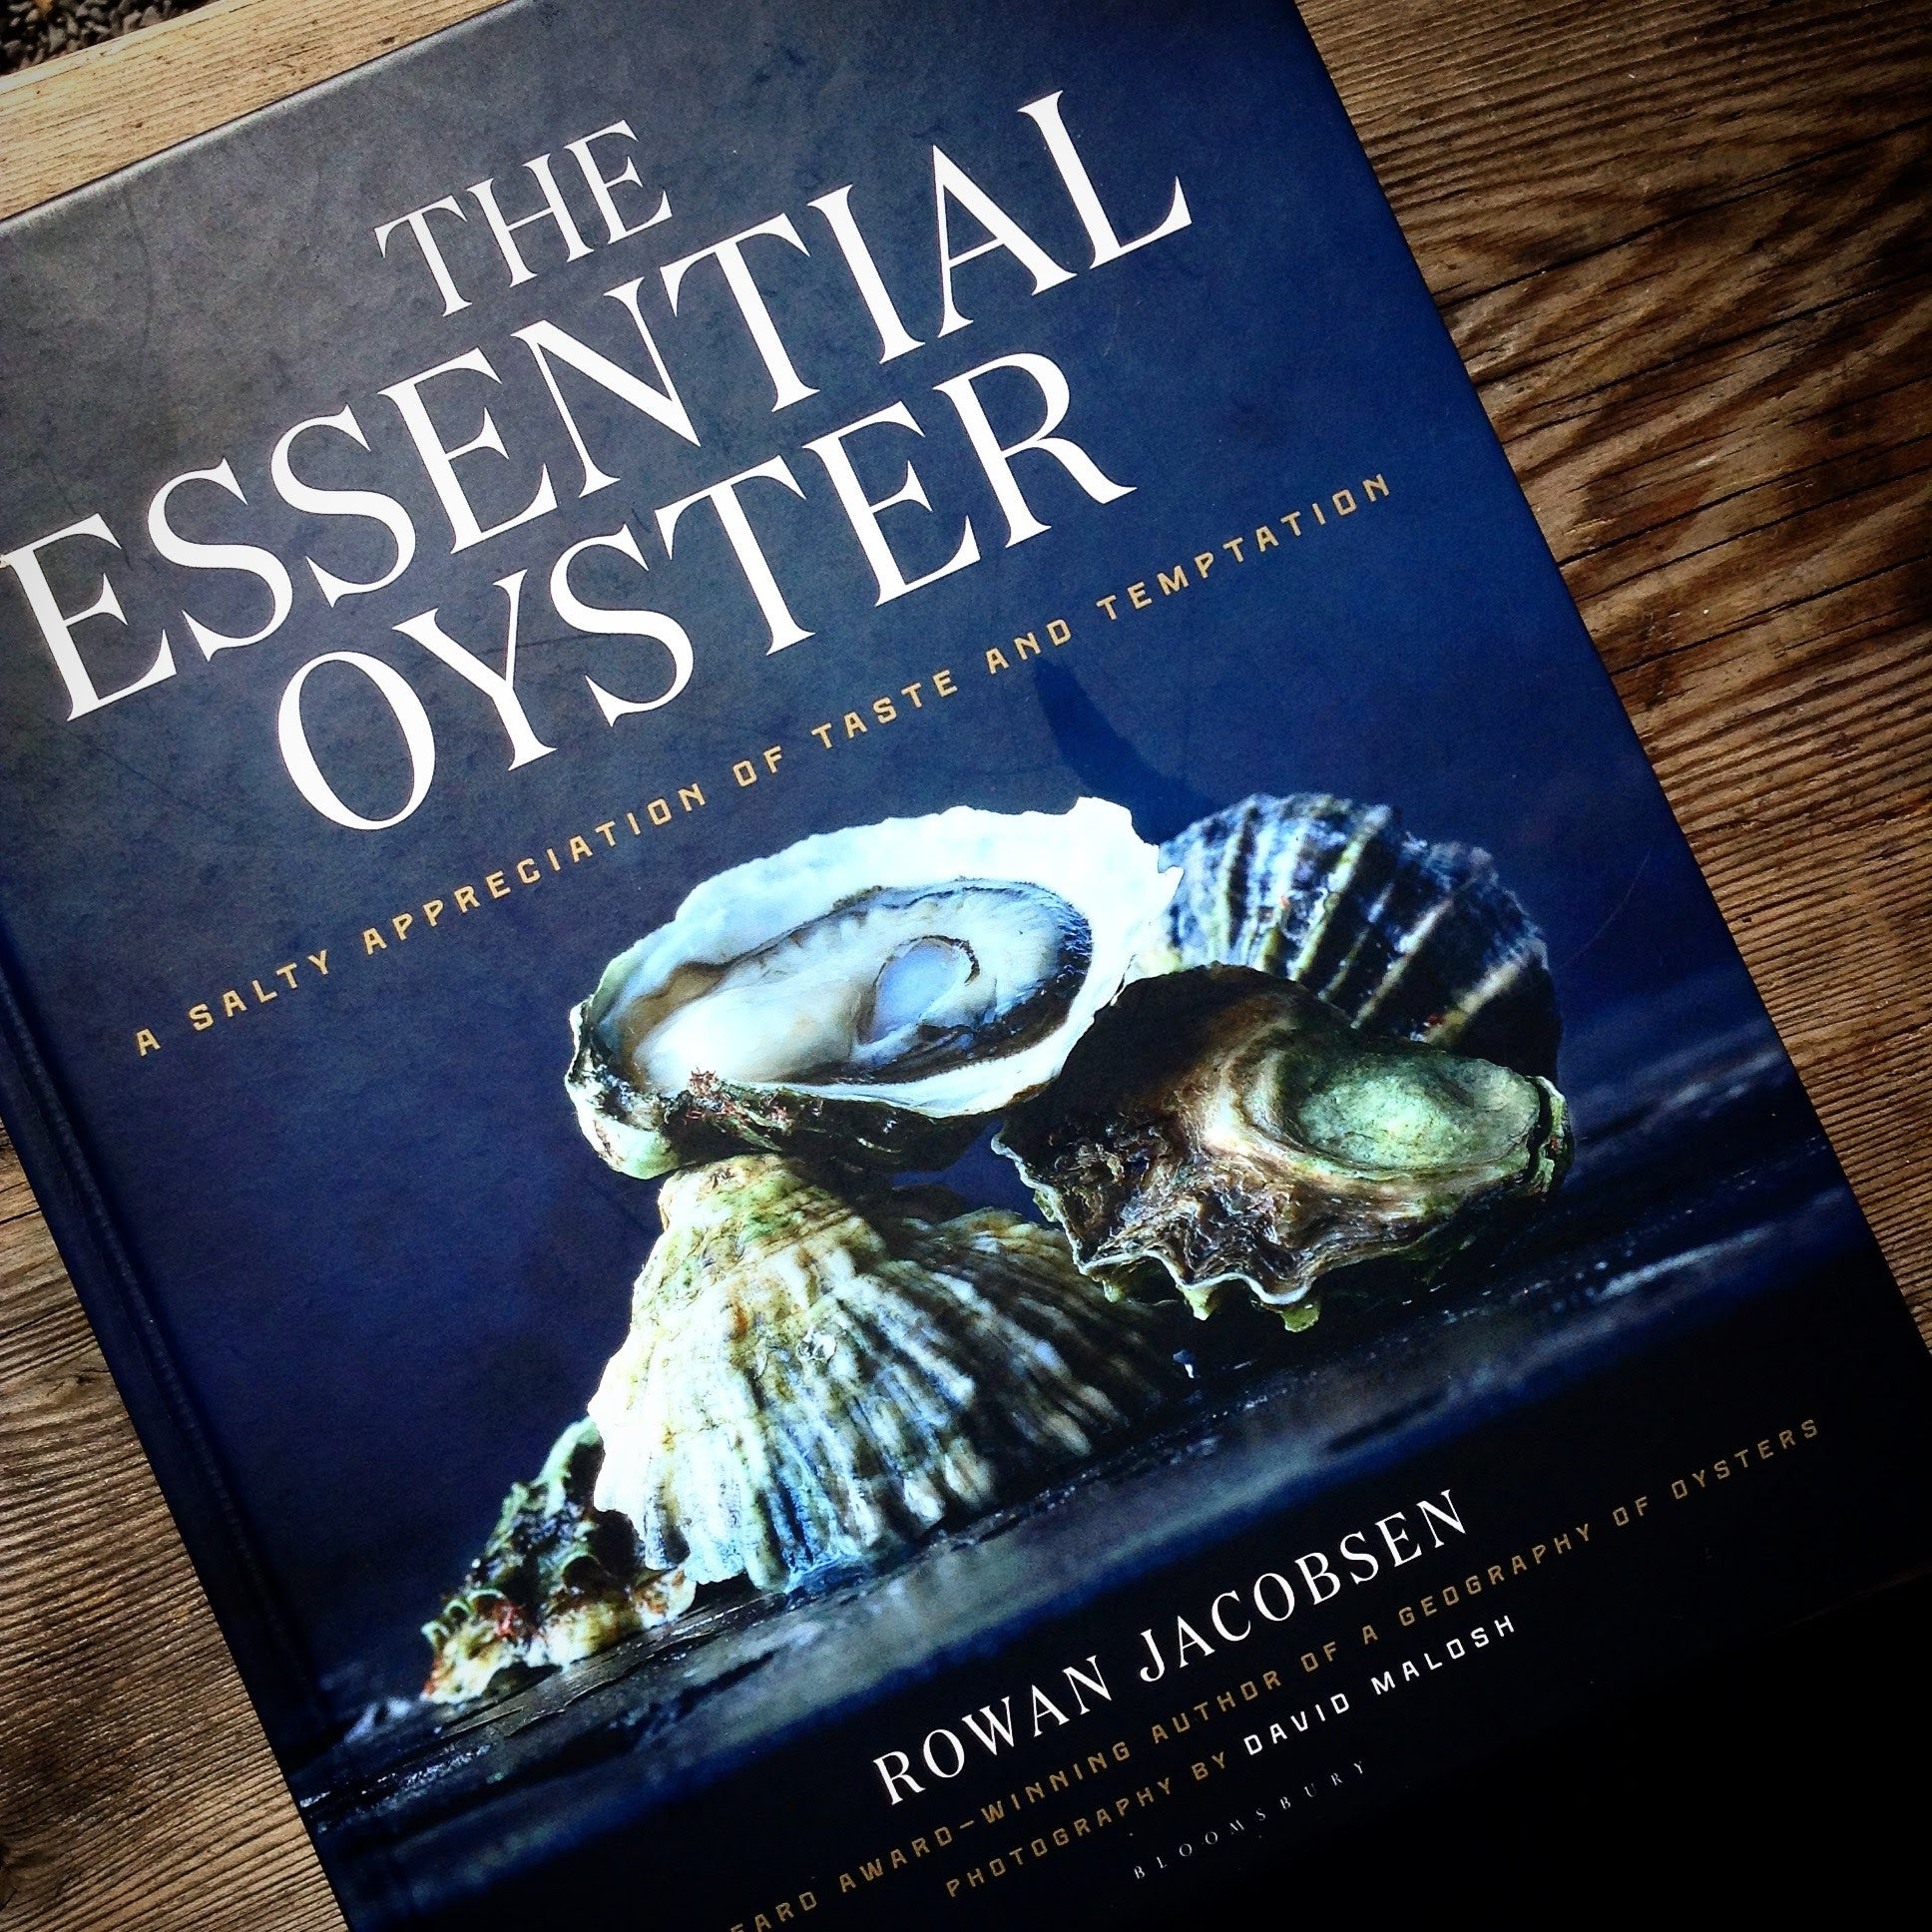 The Essential Oyster - LITTLE CREEK OYSTER FARM & MARKET